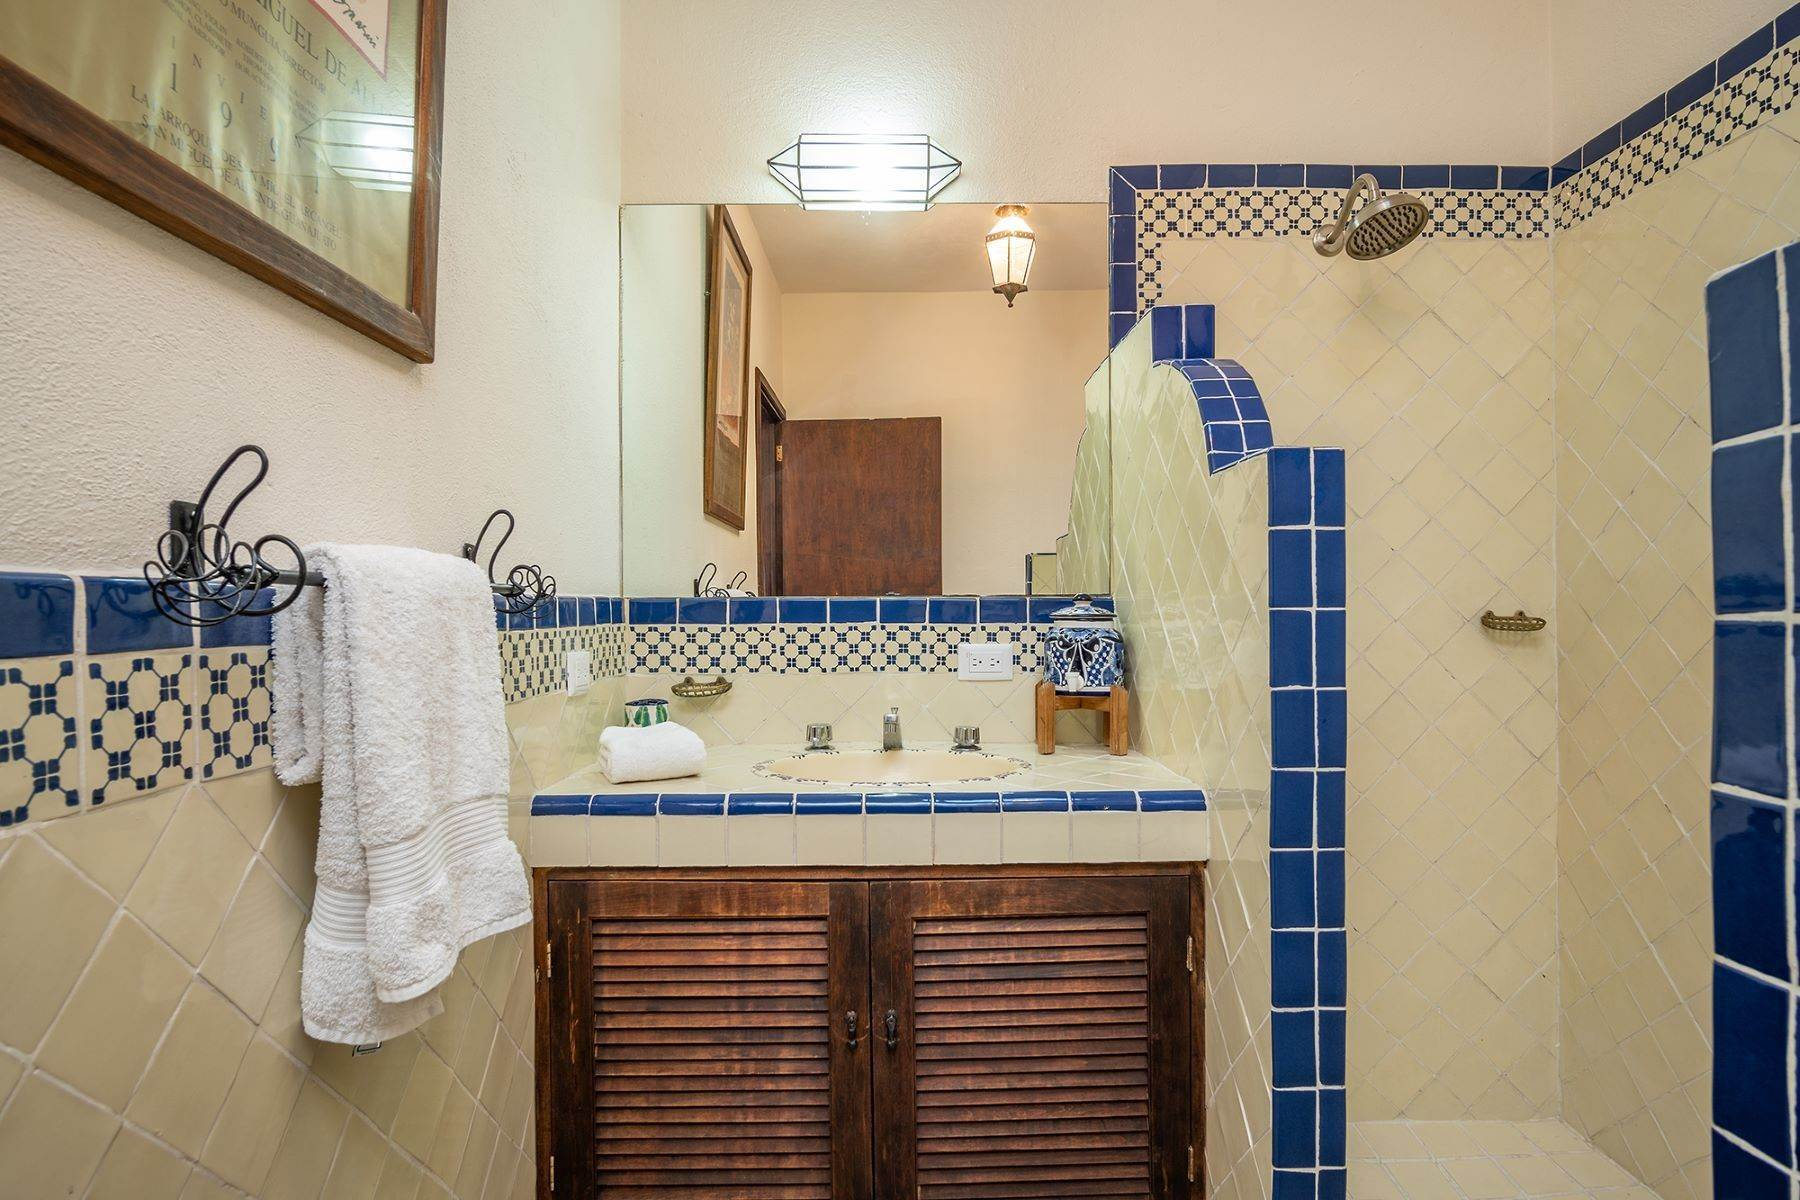 19. Single Family Homes for Sale at Casa Jacarandas Hernandez Macias San Miguel De Allende, Guanajuato 37700 Mexico